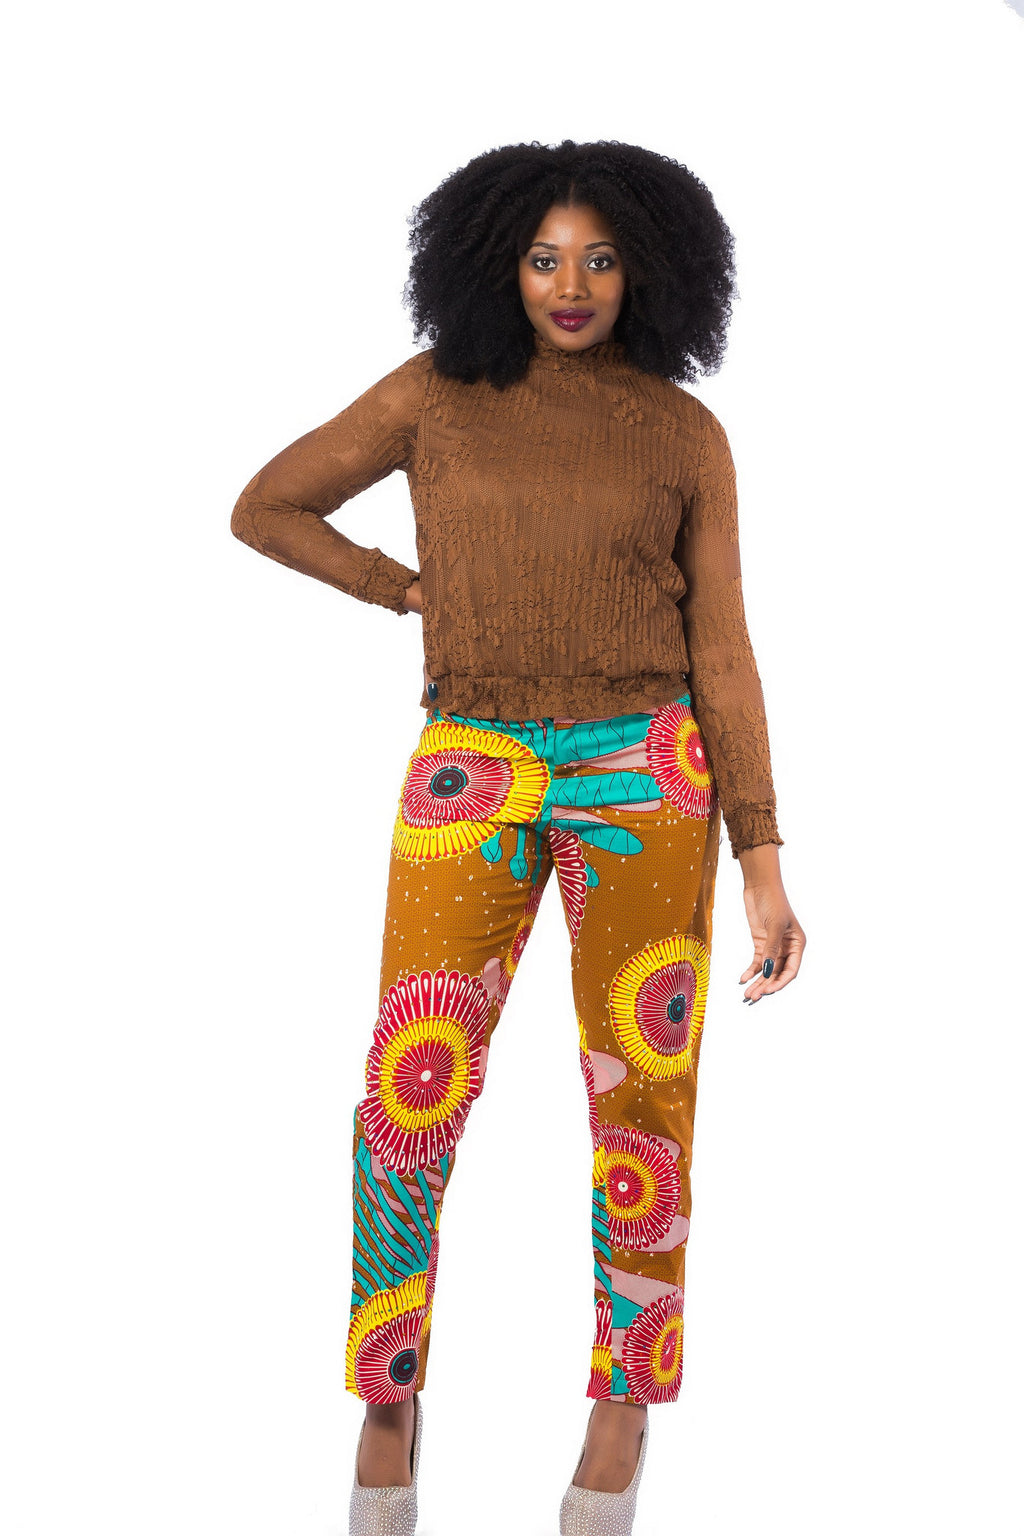 Shaday- Stoned Ankara pants (100% cotton wax fabric)